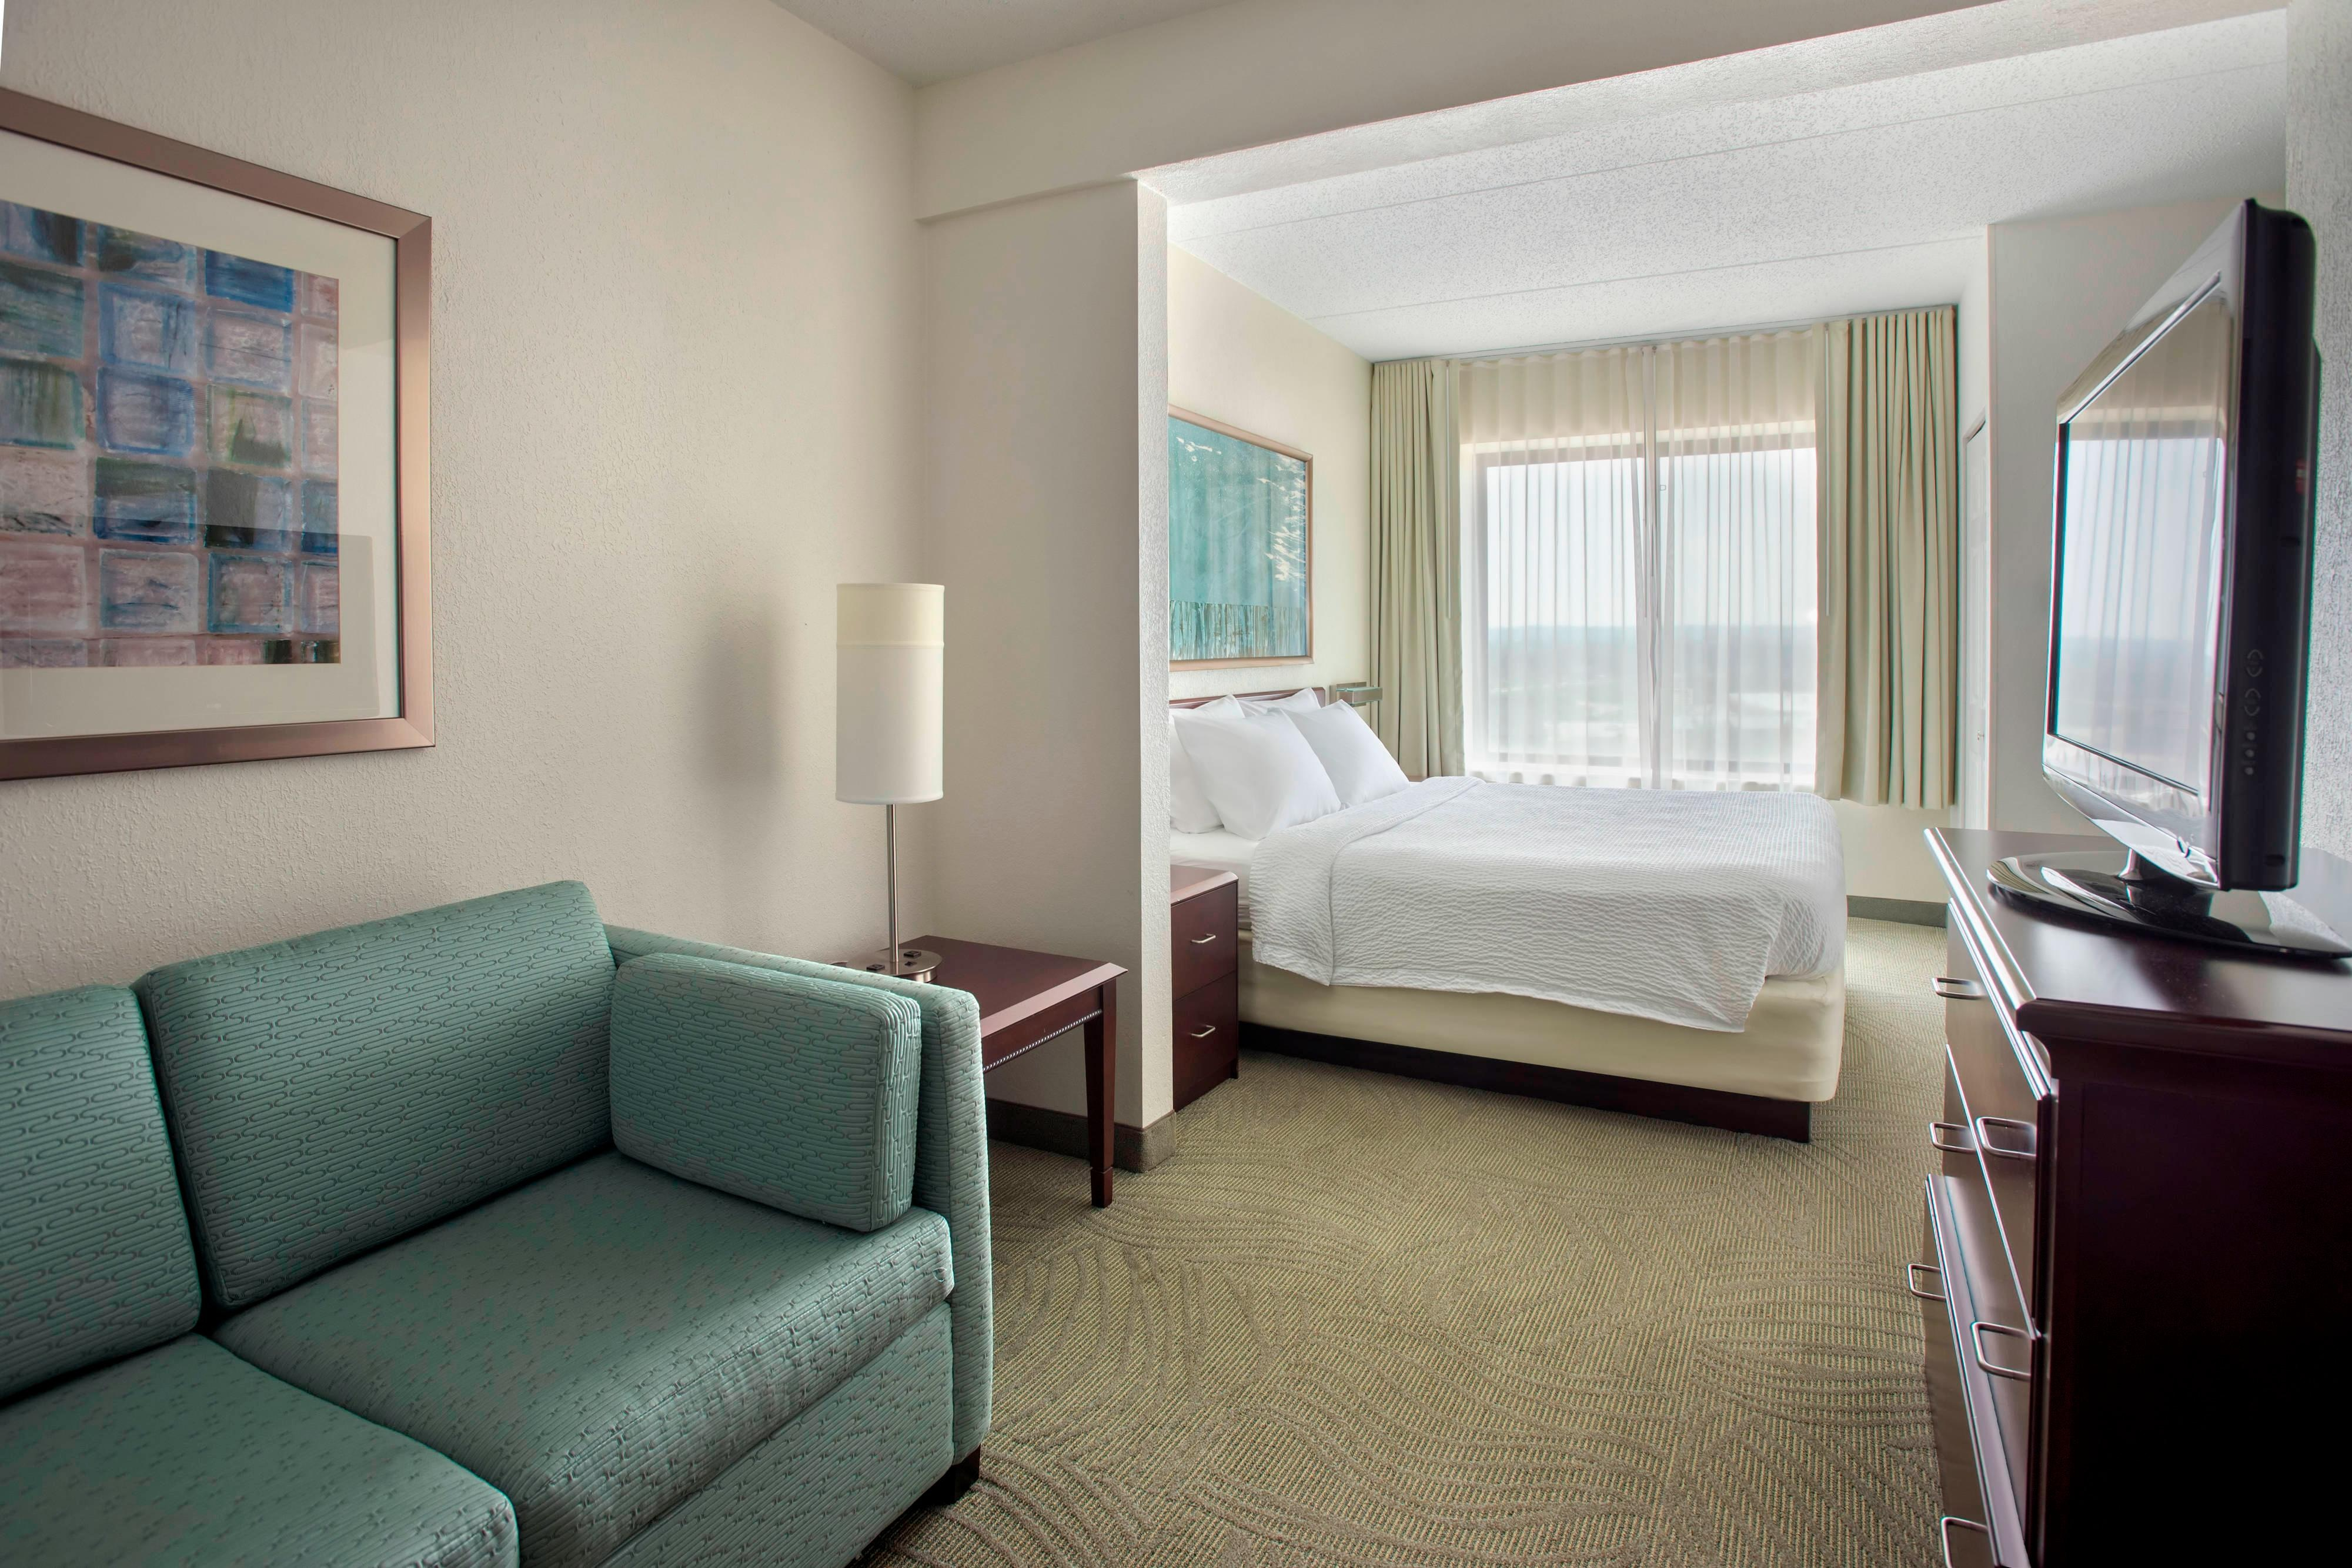 Hotels in Plymouth Meeting, PA - guest rooms